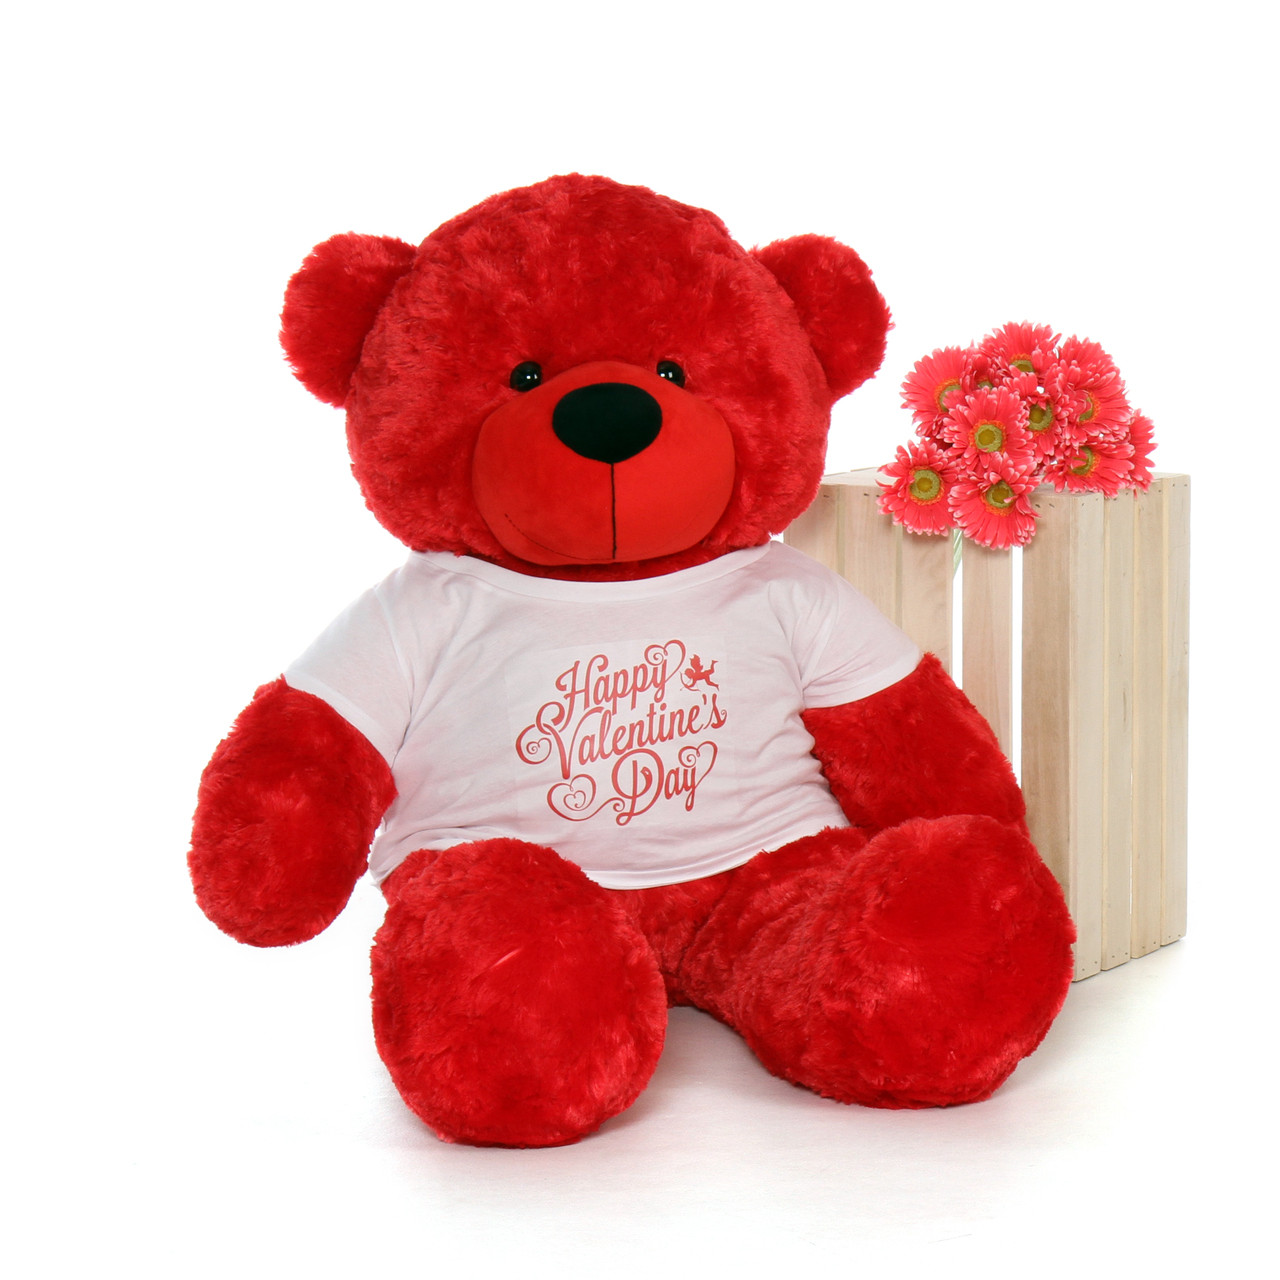 4ft Life Size Teddy Bear Wearing Happy Valentines Day